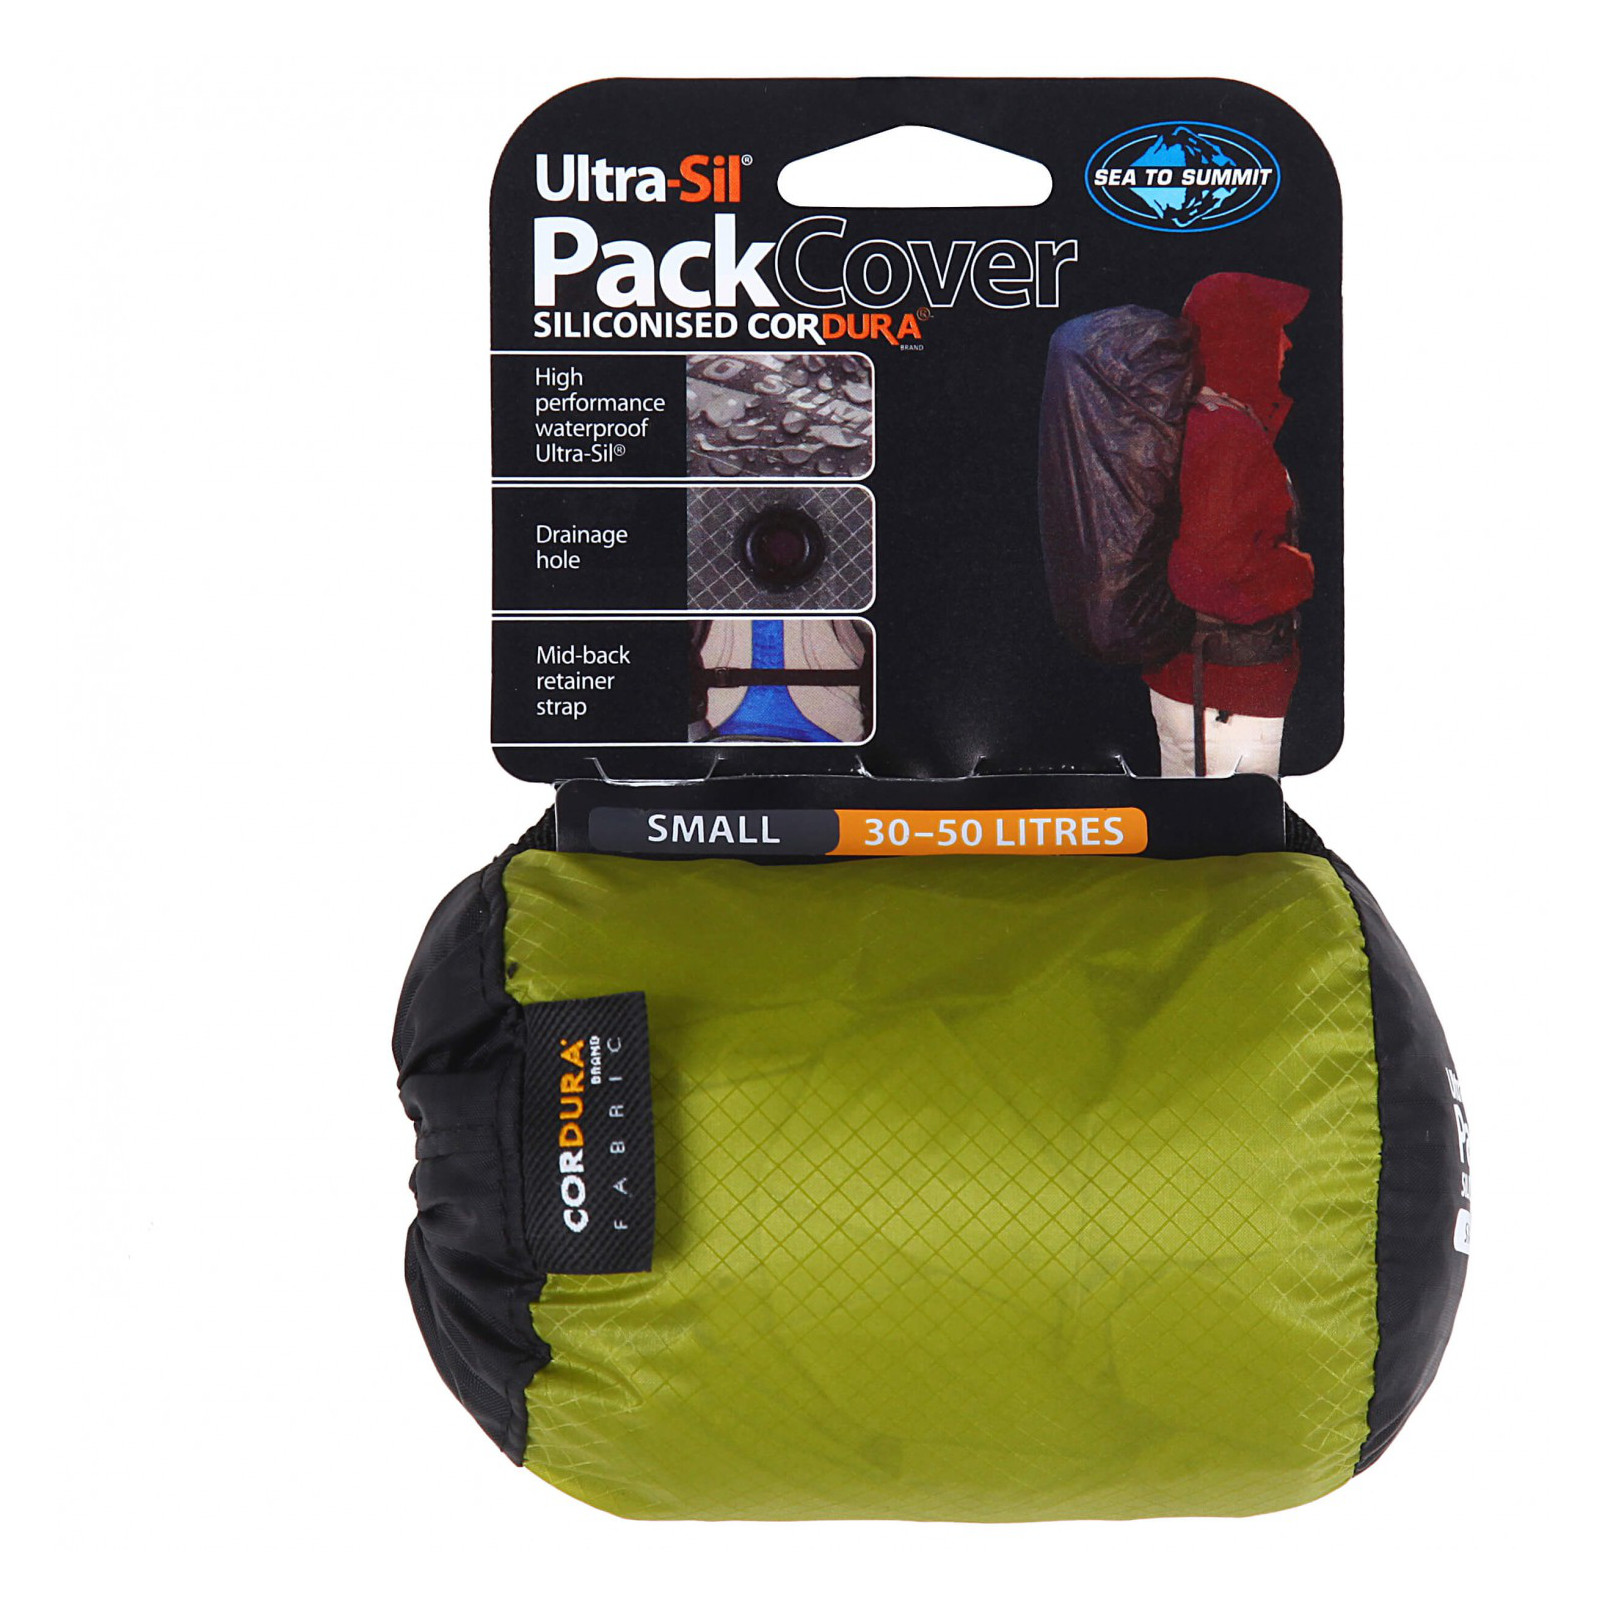 sea-to-summit-ultrasil-pack-cover-rain-cover-detail-2